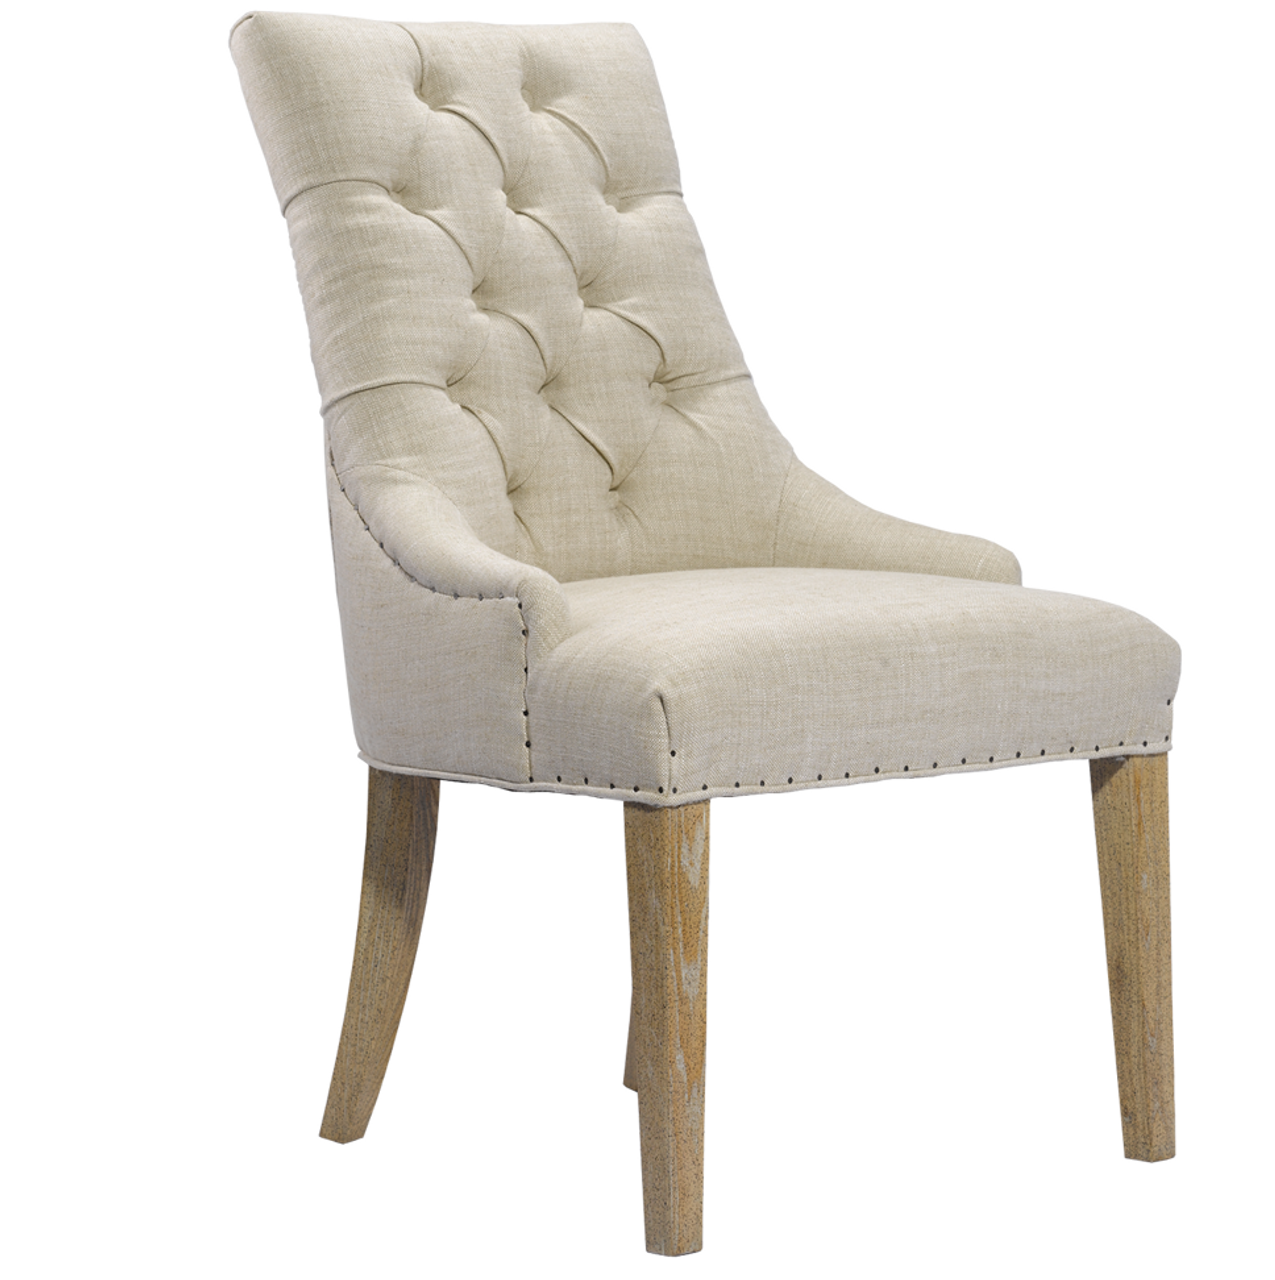 Luxe Linen Upholstered Tufted Dining Armchair| Zin Home